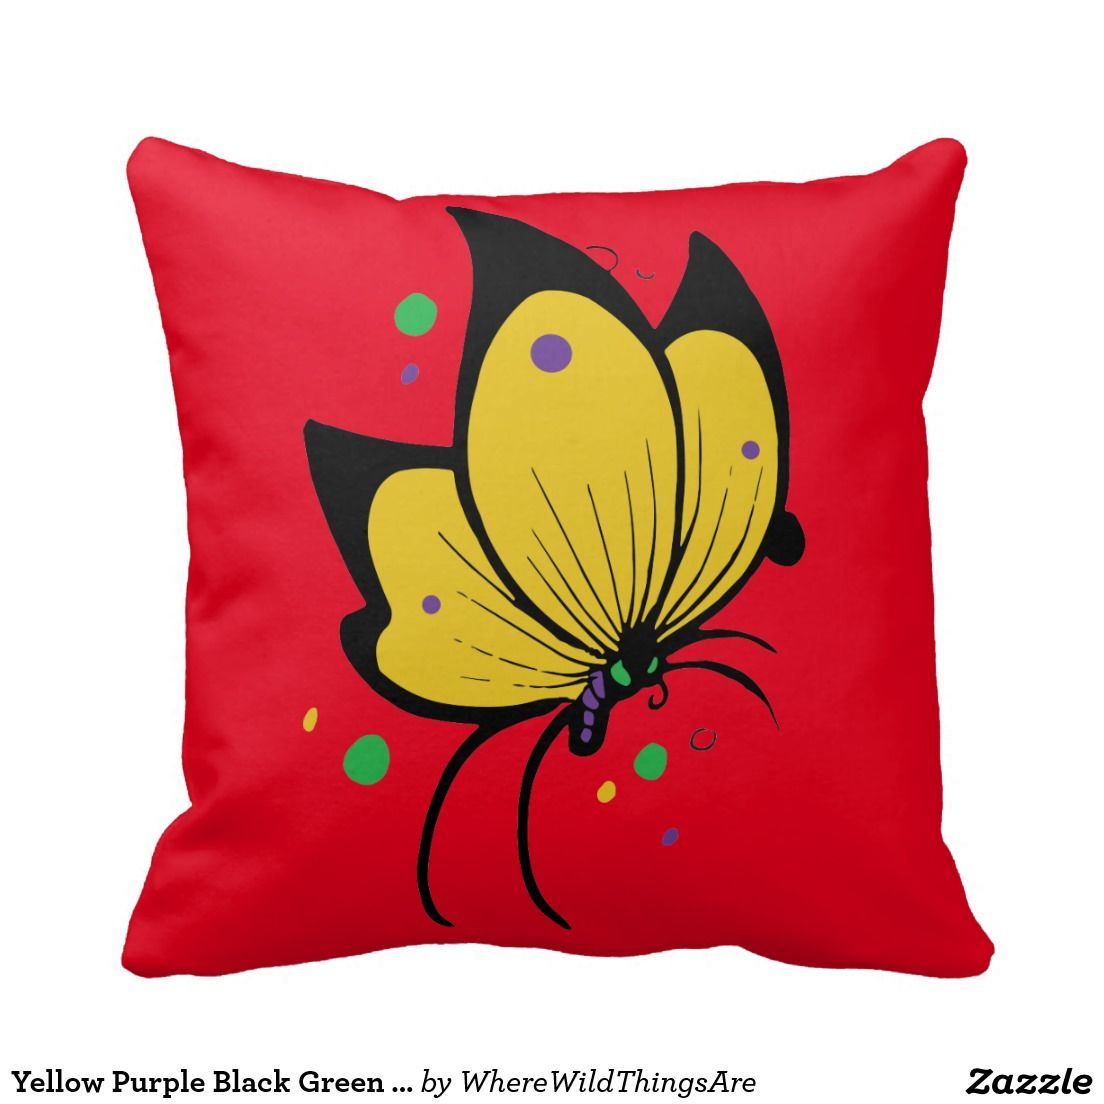 Yellow purple black green butterfly throw pillows motherus day